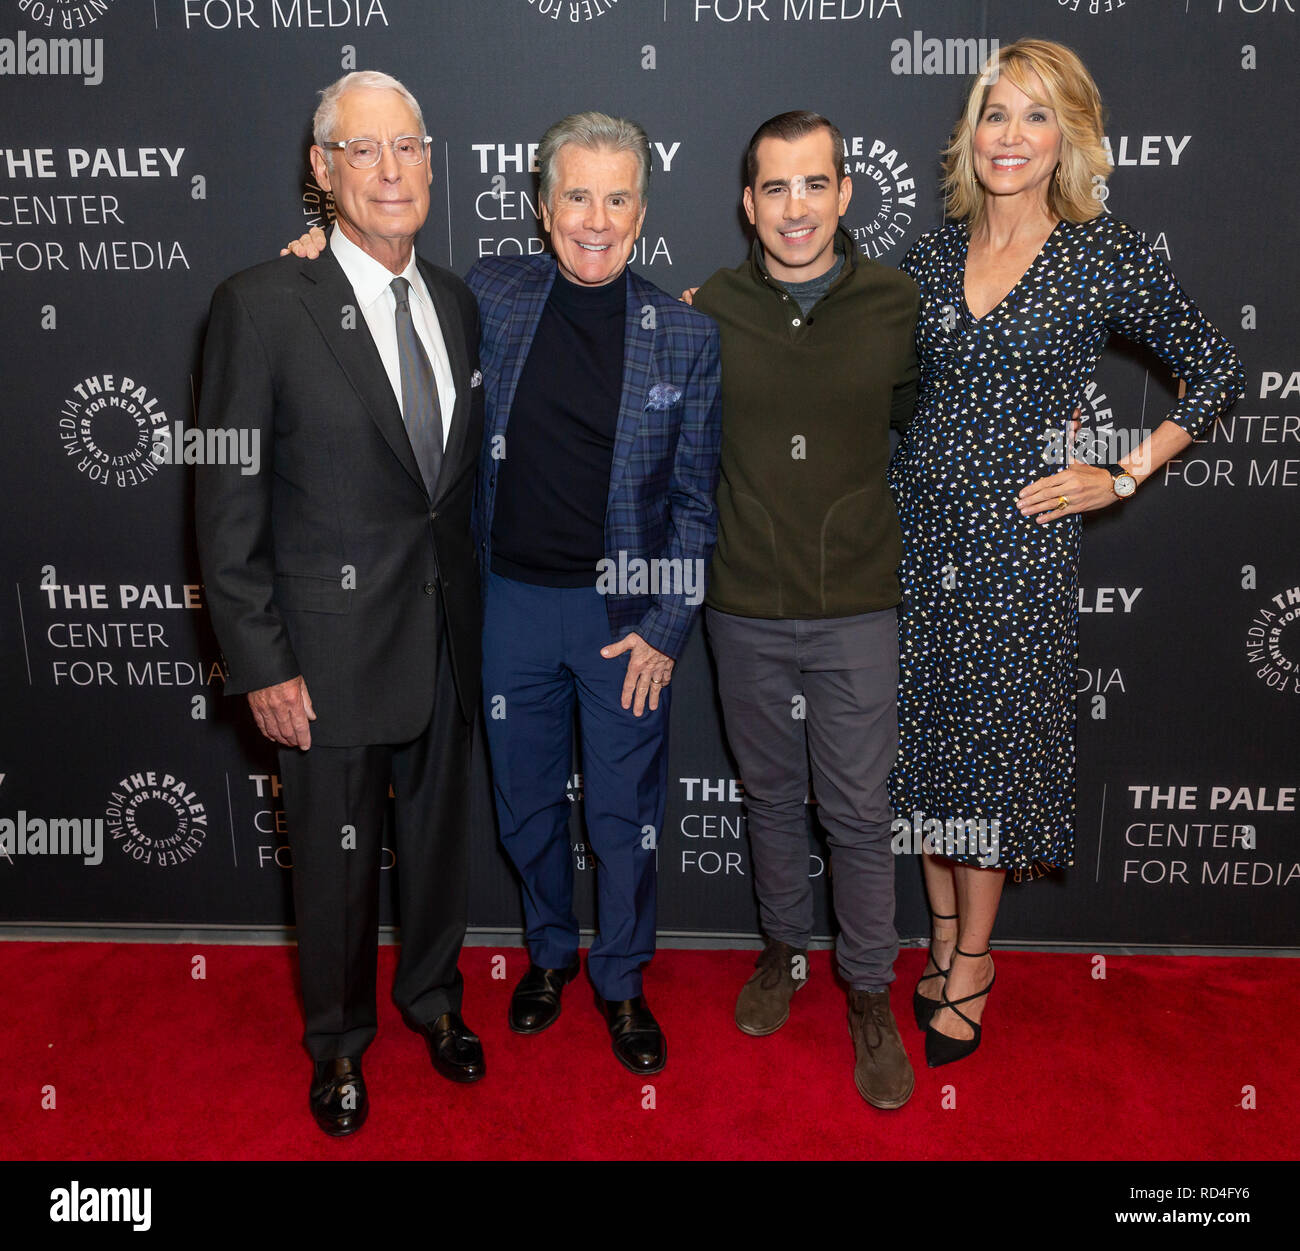 Callahan Walsh High Resolution Stock Photography And Images Alamy The father and son duo open up about in pursuit with john walsh, and share their mission to track down fugitives and find missing children. https www alamy com new york ny january 16 2019 henry schlieff john walsh callahan walsh paula zahn attend in pursuit with john walsh screening conversation at the paley center for media credit lev radinalamy live news image231825642 html